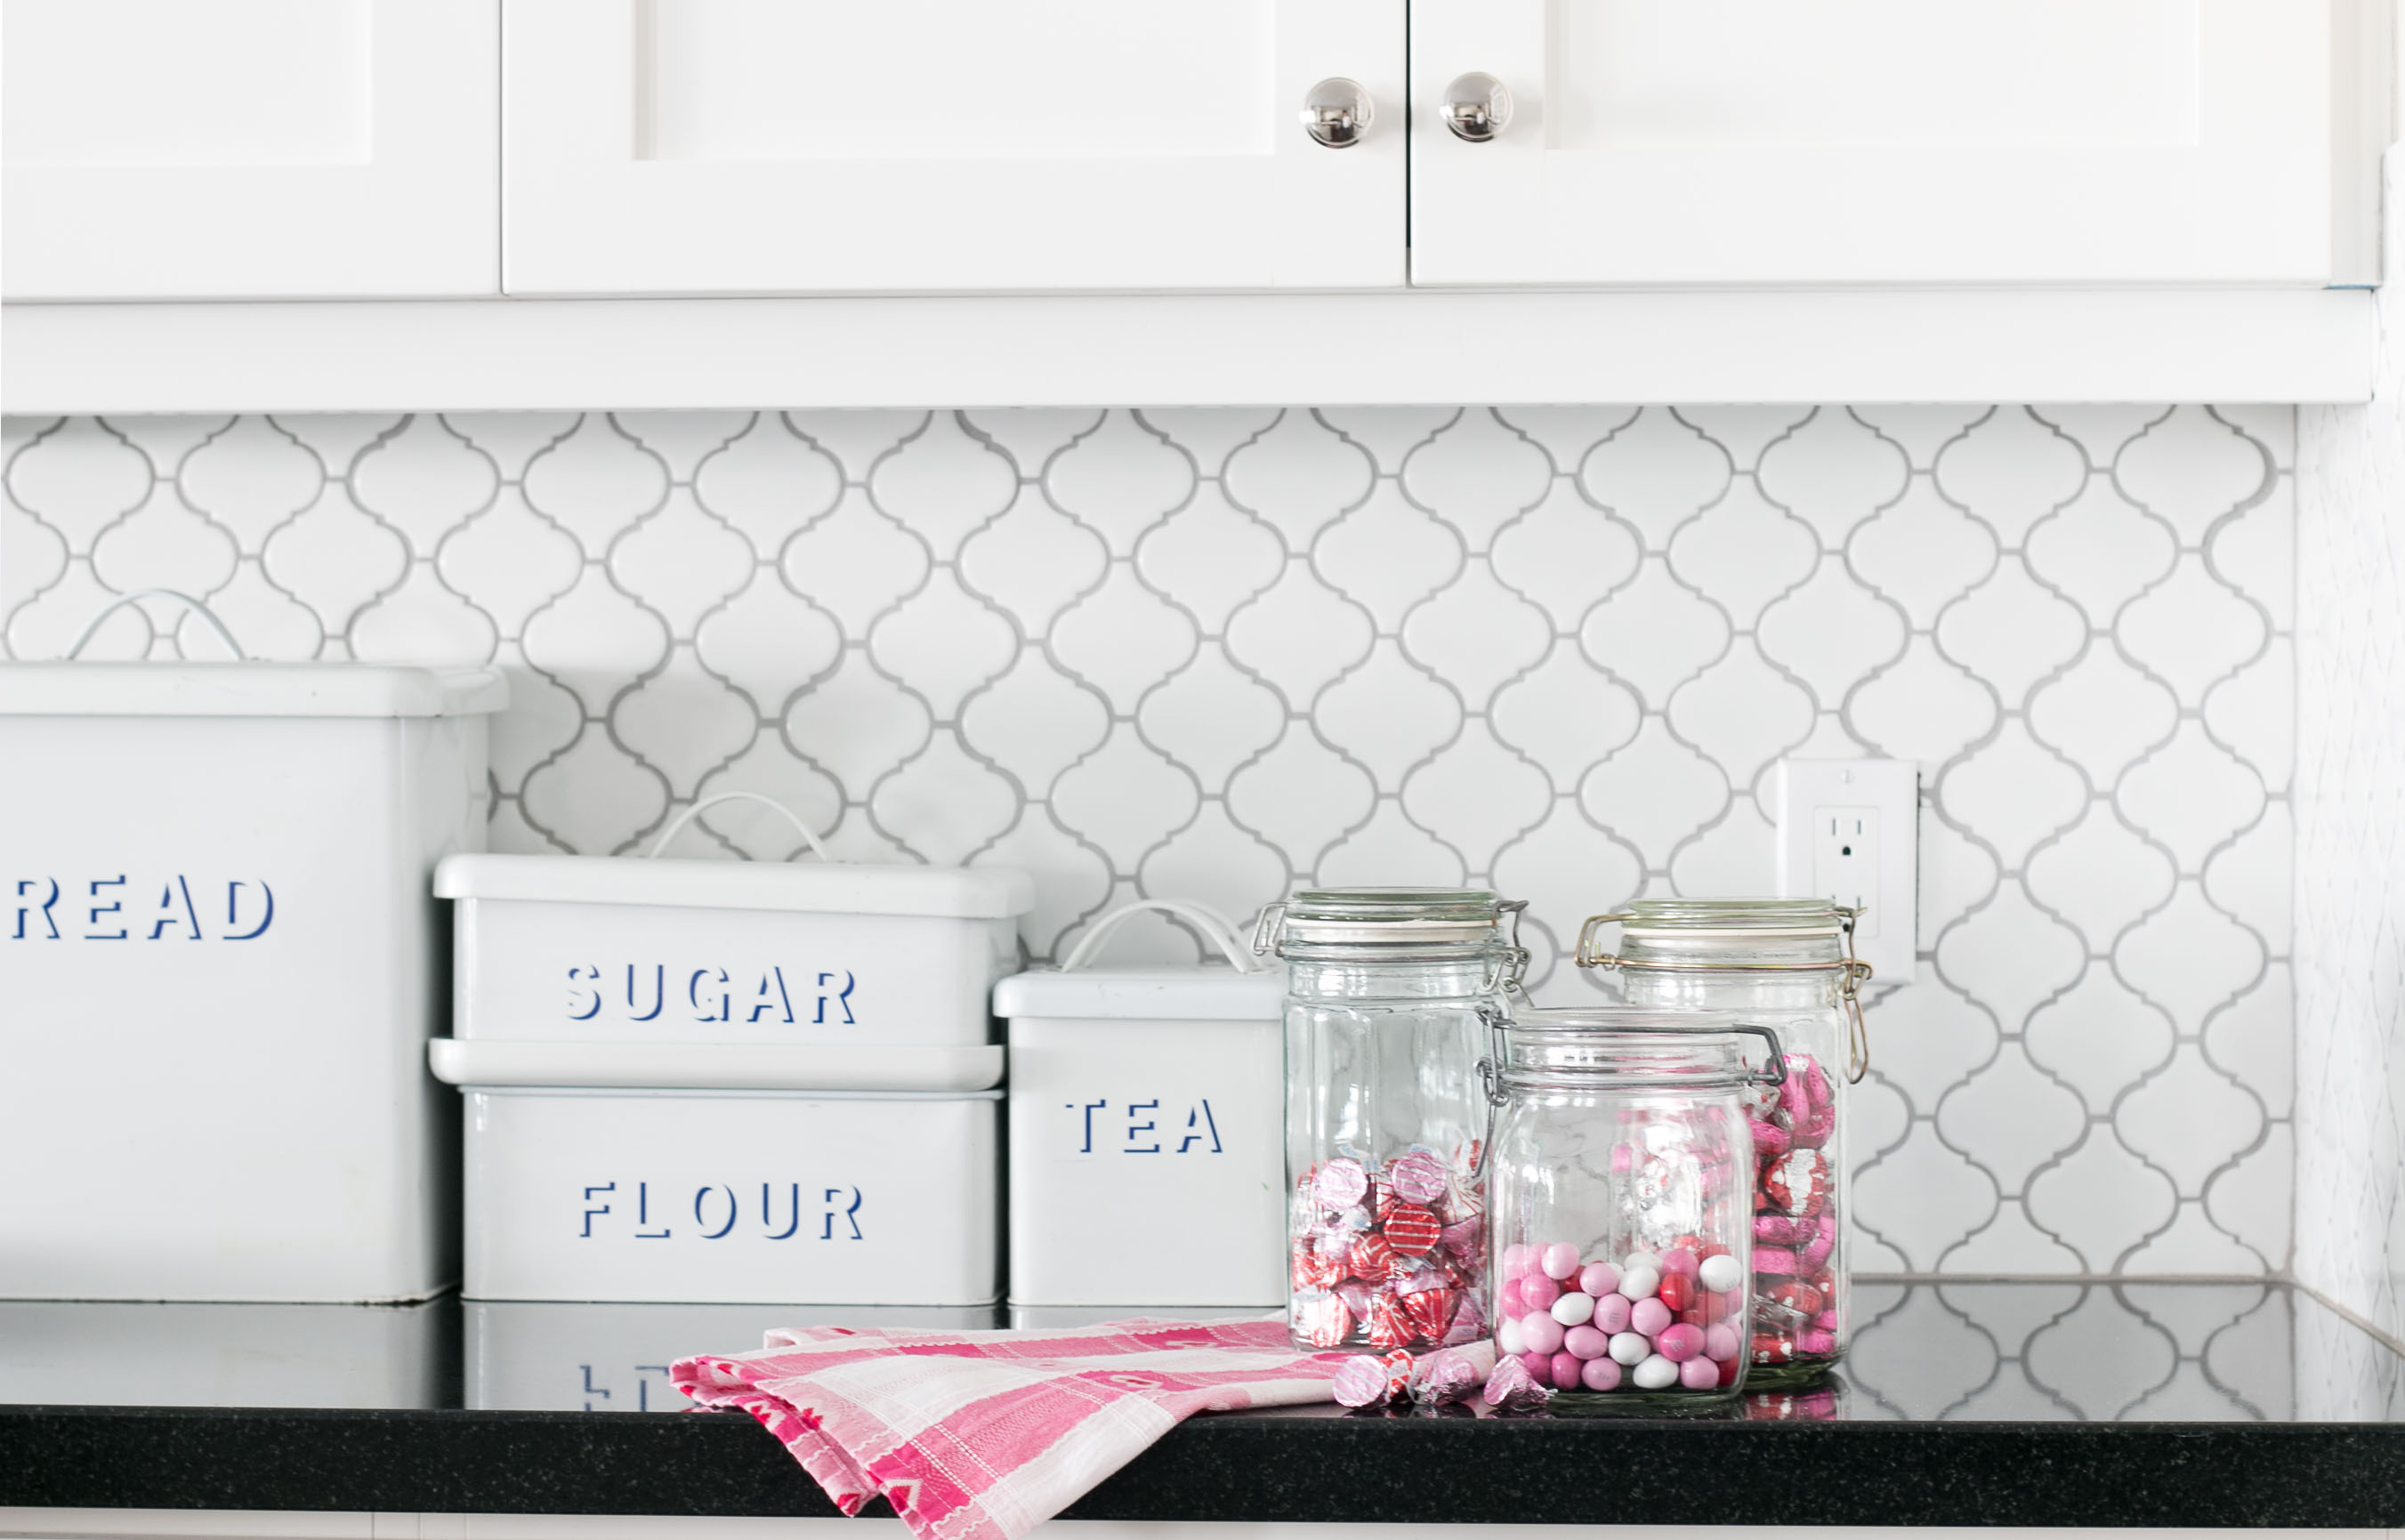 lindsay hill interiors simple valentine's day decor candy jars